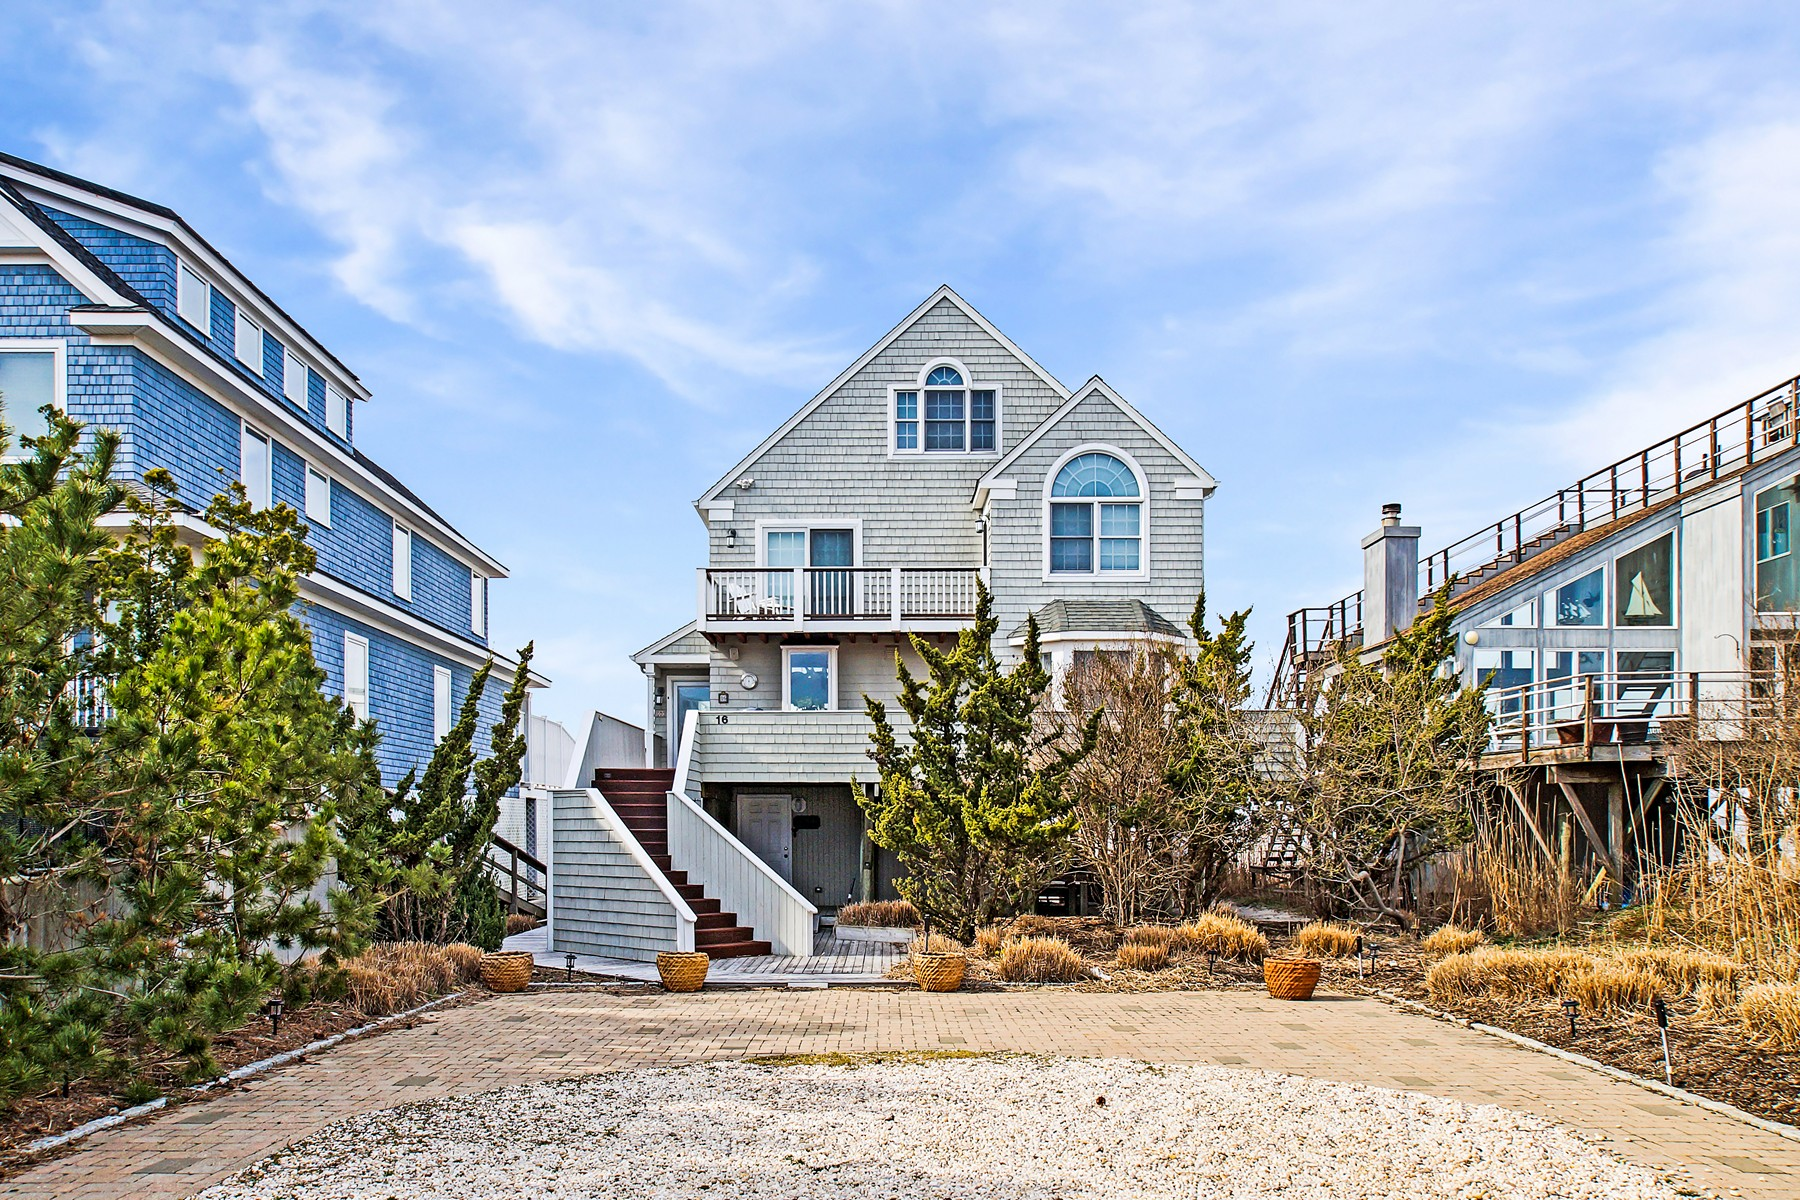 Single Family Homes for Sale at Westhampton Dune 16 Dune Lane Westhampton Dunes, New York 11978 United States